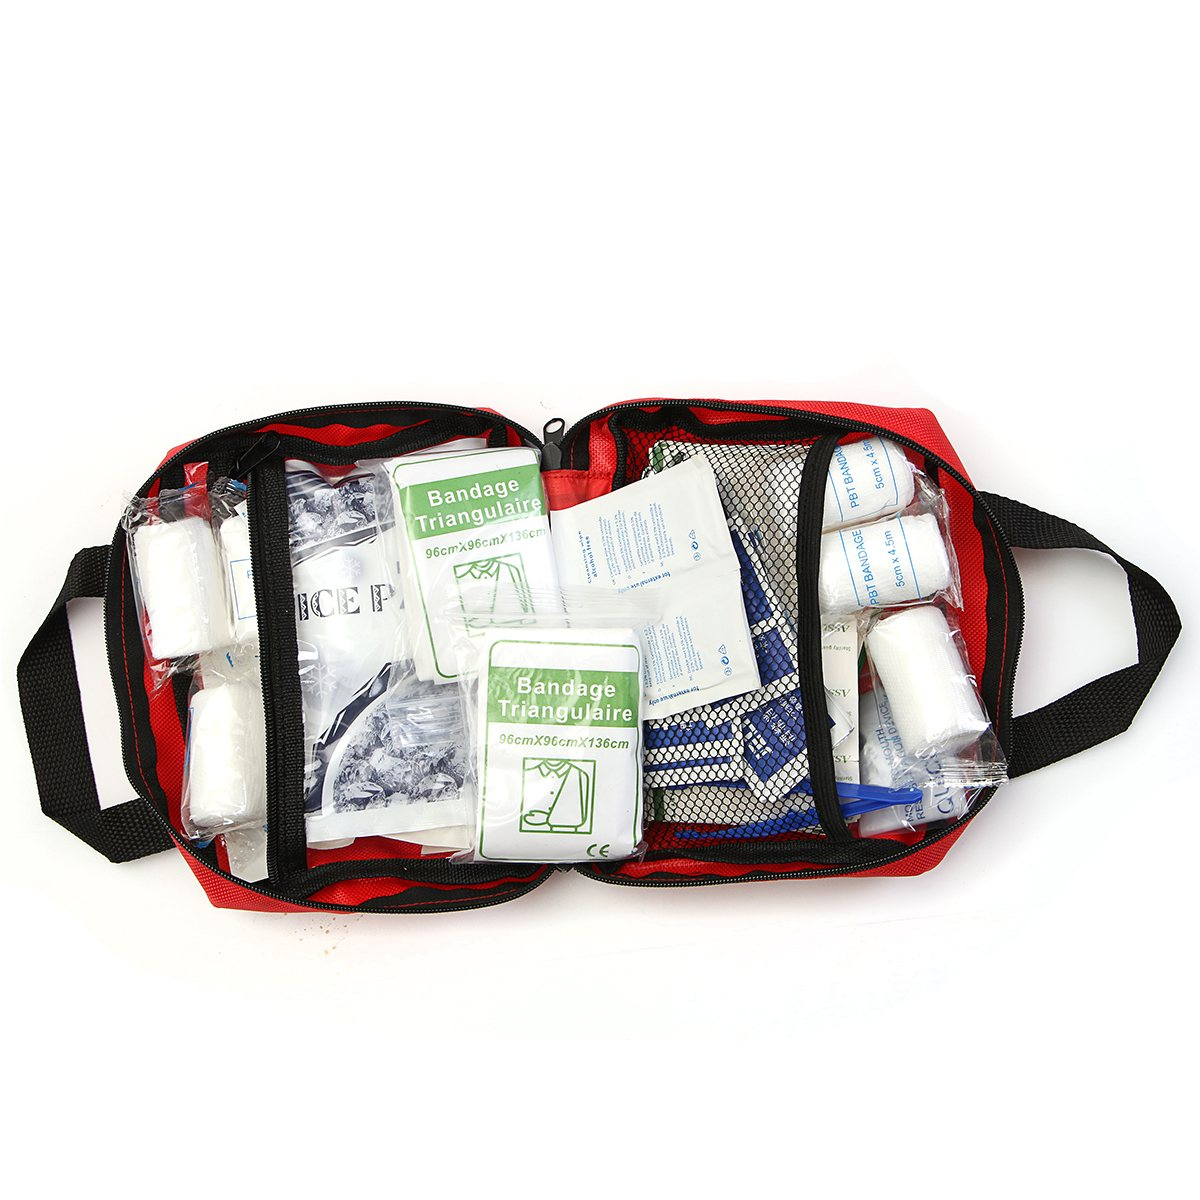 NEW Safurance 230 Pieces First Aid kit Emergency Set Kit Outdoor Wilderness Survival Medical Treatment Pack Set new gbj free shipping home aluminum medical cabinet multi layer medical treatment first aid kit medicine storage portable